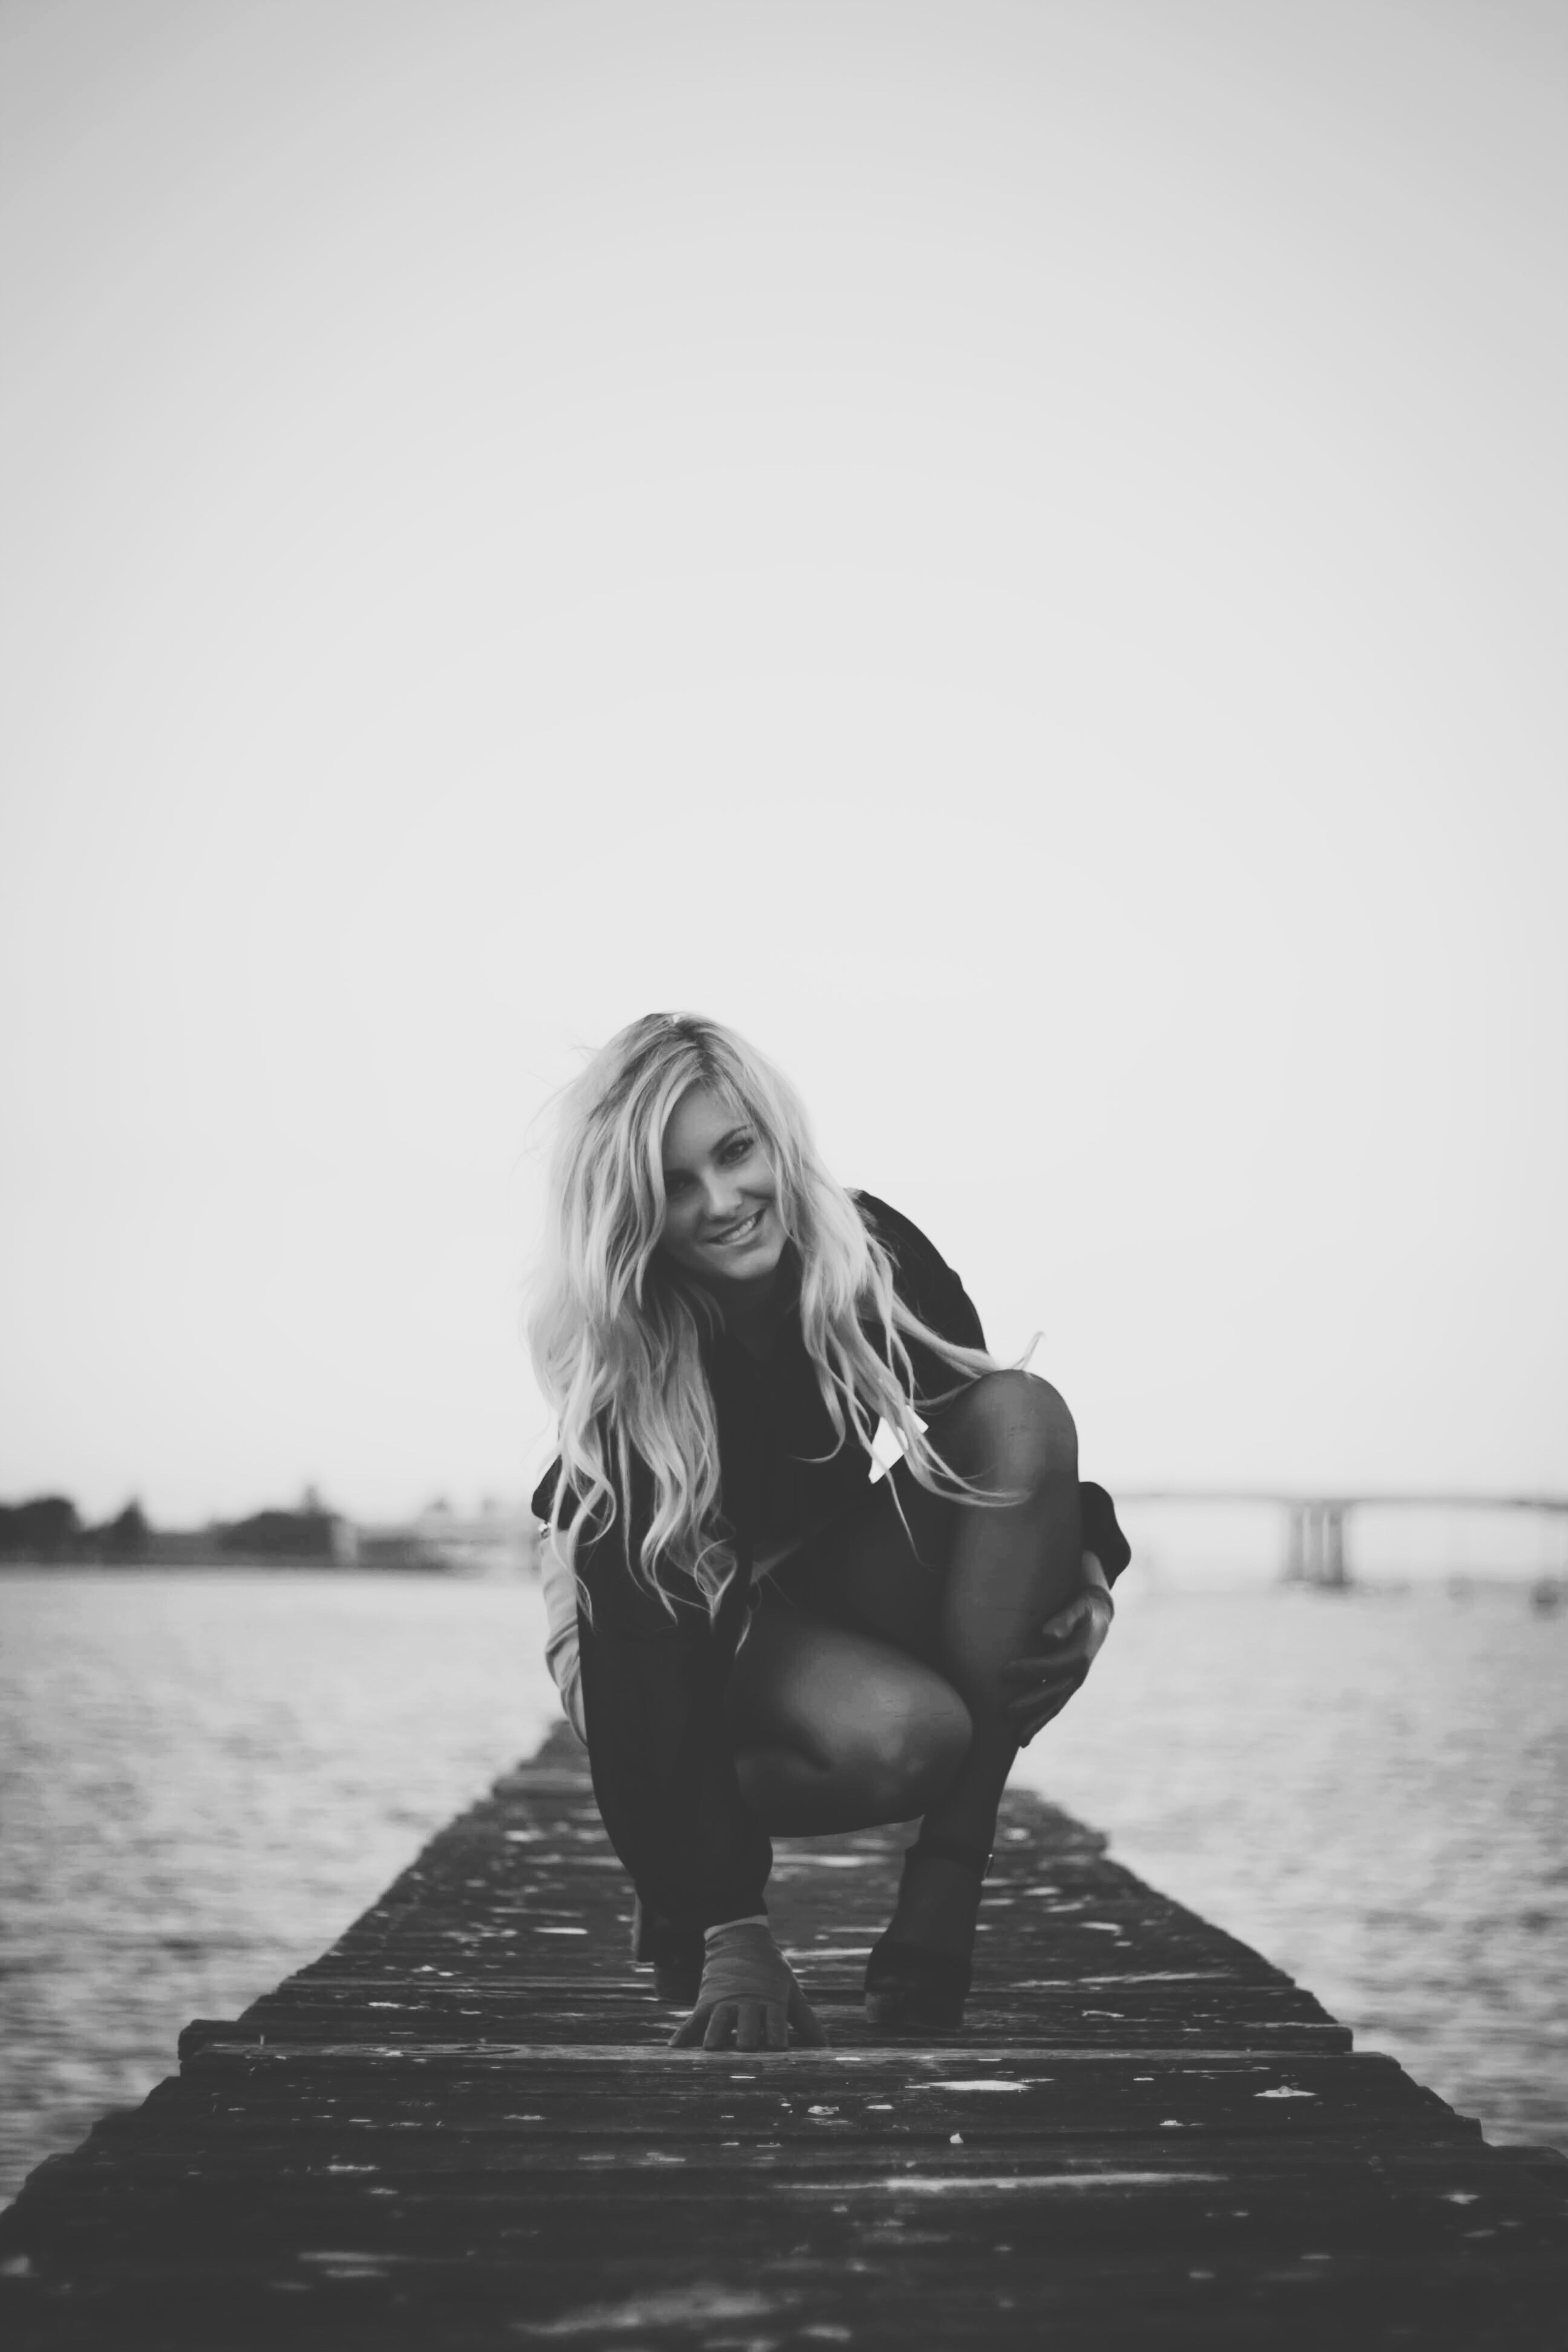 young girl sitting on wharf